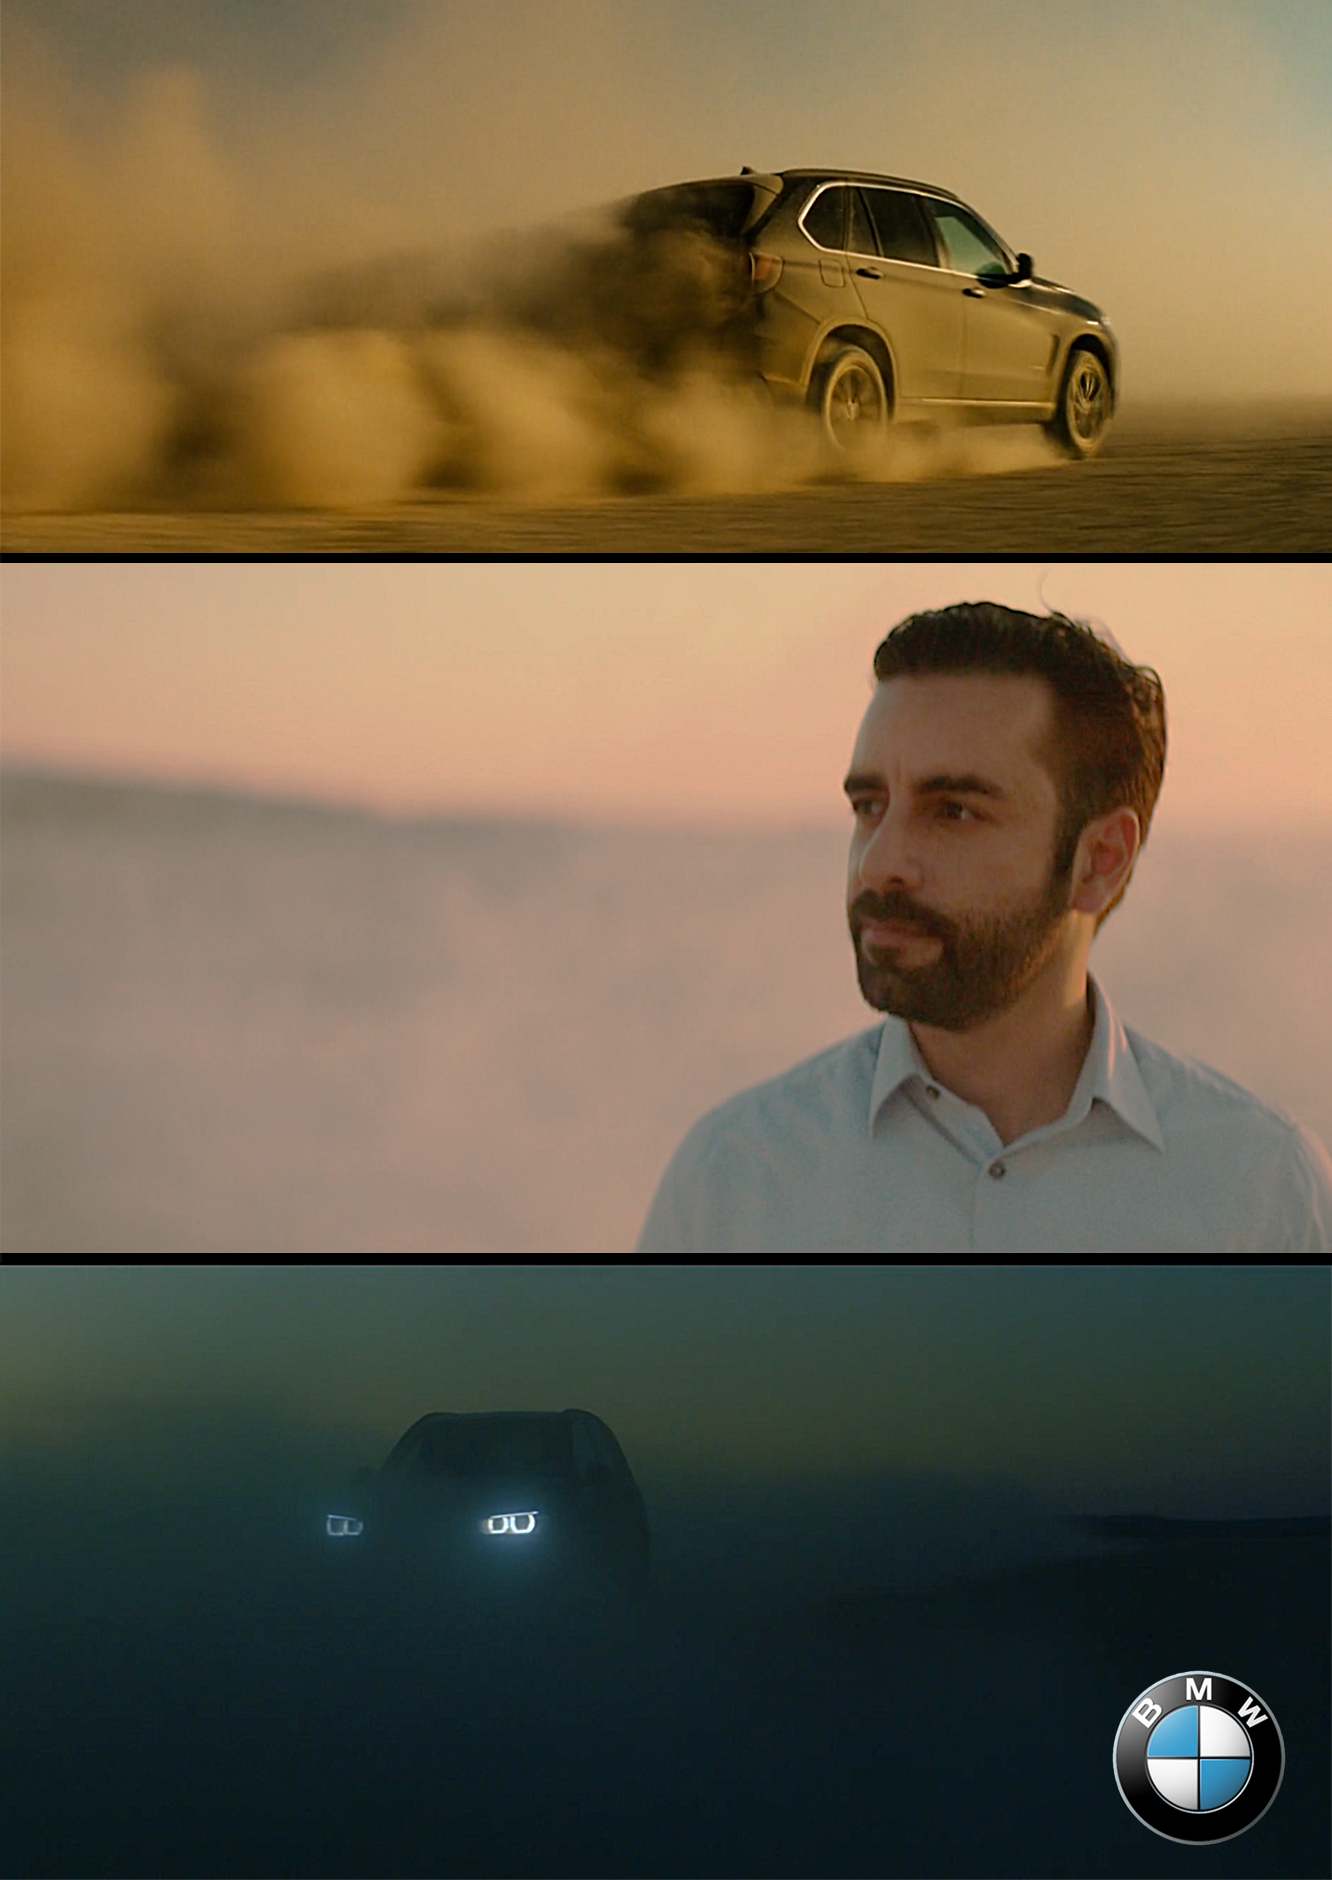 Arsi nami in a BMW commercial